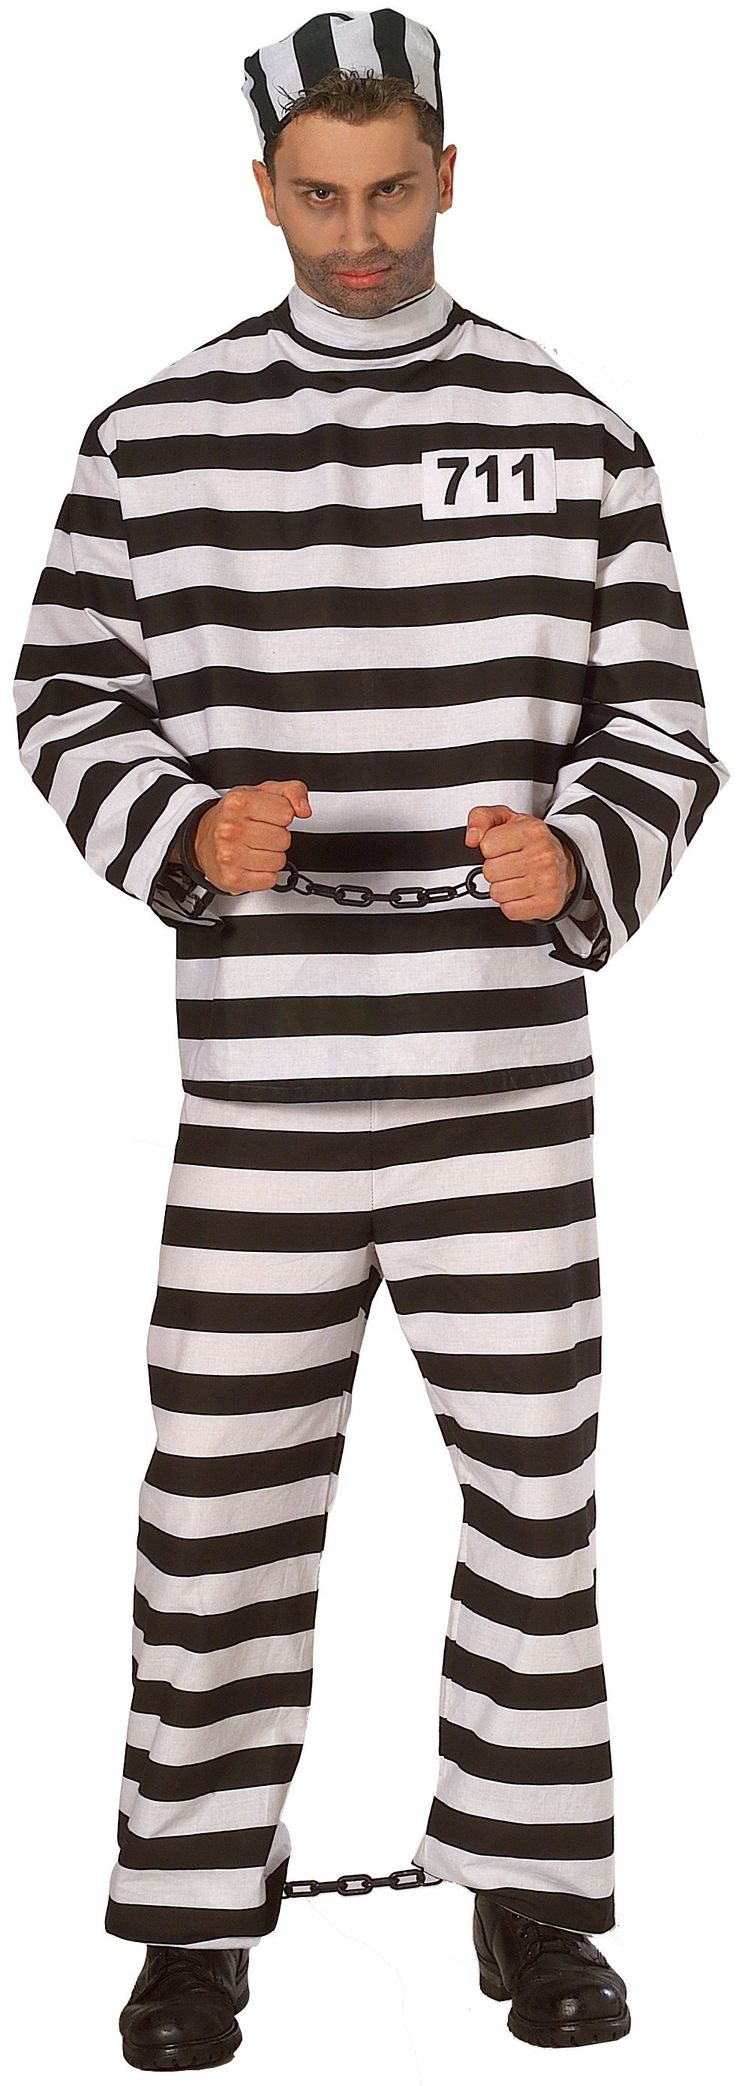 convict costume x large adult - College Halloween Costumes Male